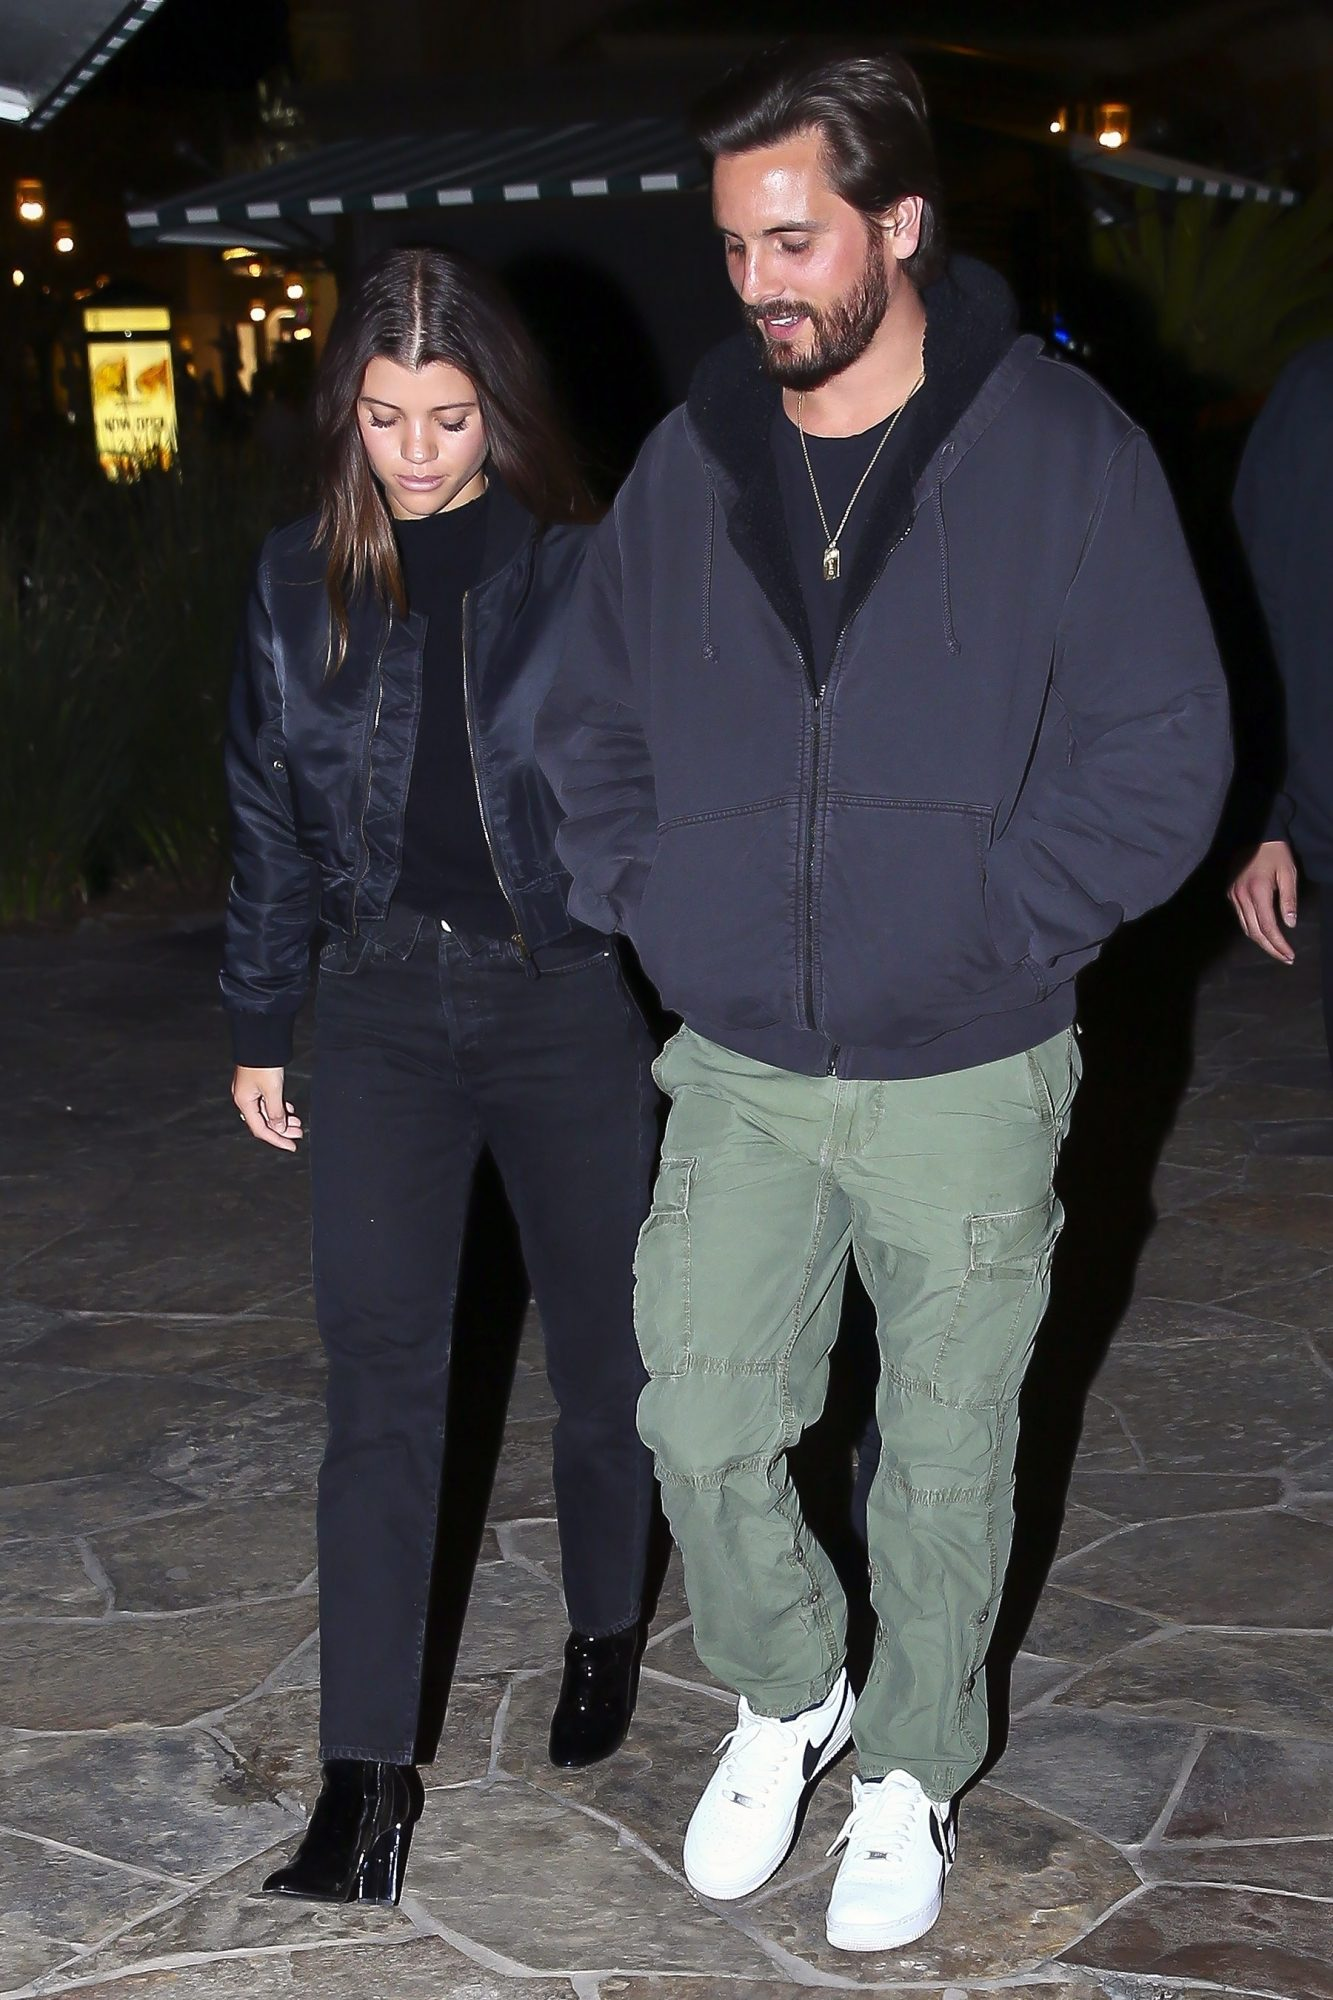 *EXCLUSIVE* Sofia Richie allegedly appears to be sipping on a drink while on a date with Scott Disick